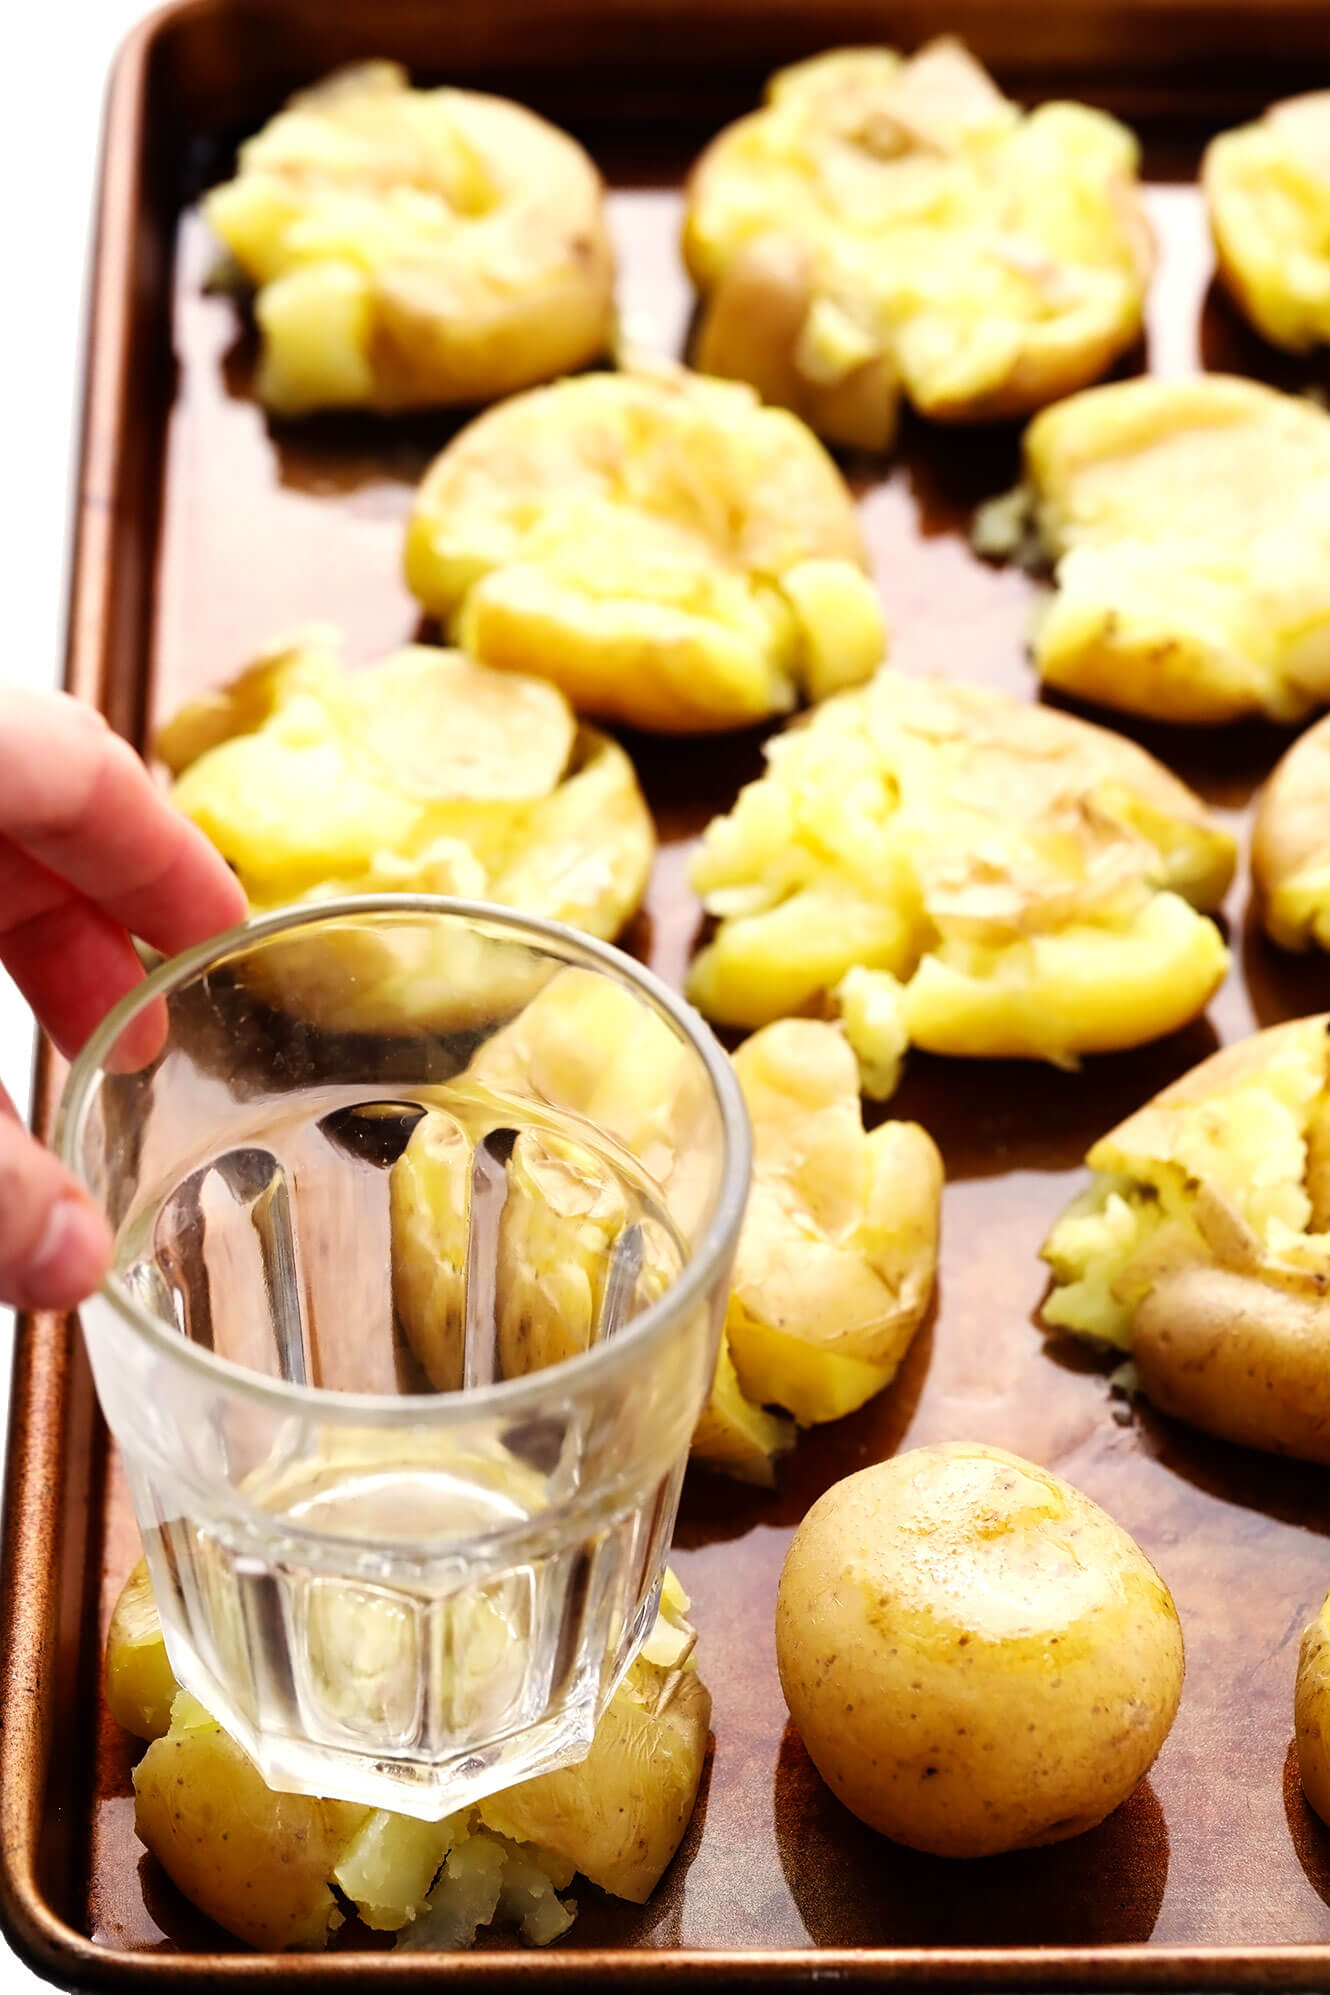 Smashing boiled potatoes with a drinking glass